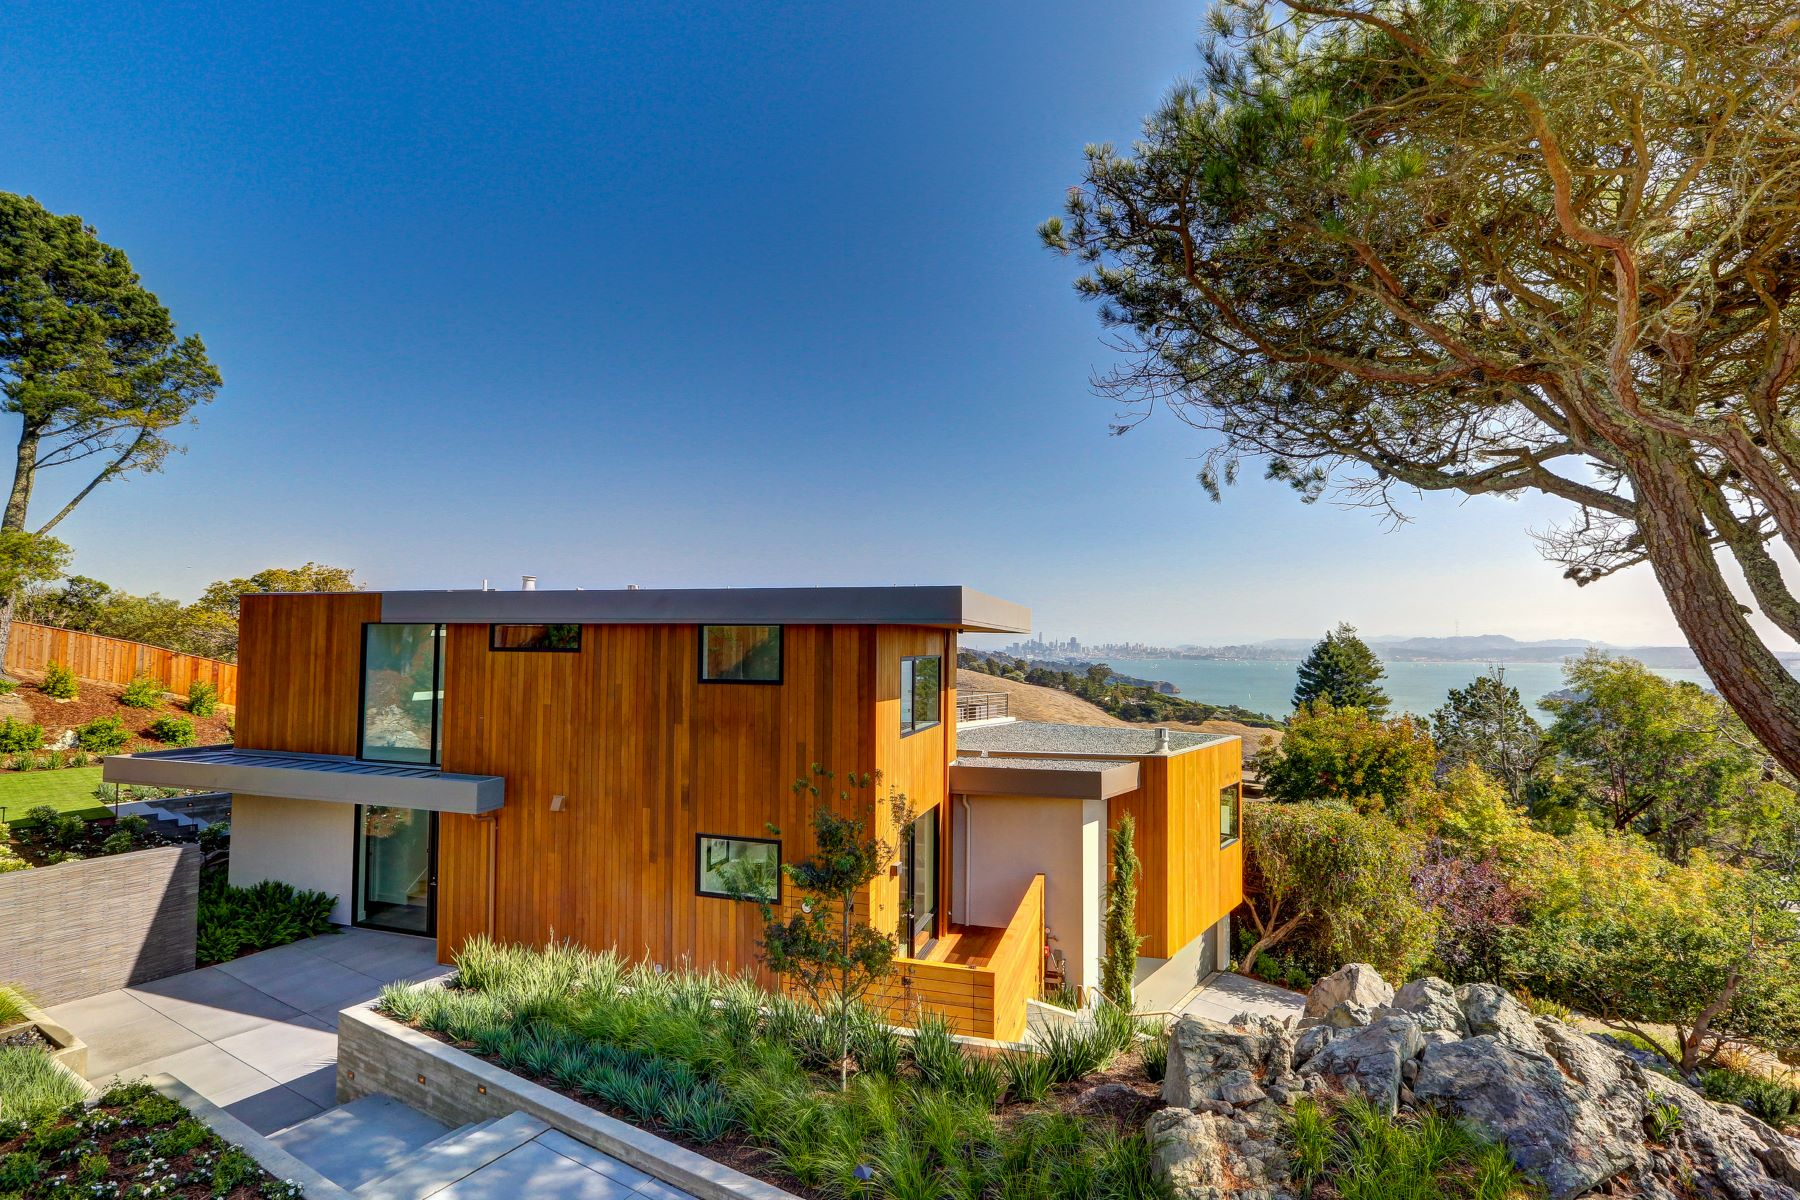 Maison unifamiliale pour l à vendre à Spectacular Ultra Contemporary Home! 86 Sugarloaf Dr, Tiburon, Californie, 94920 États-Unis